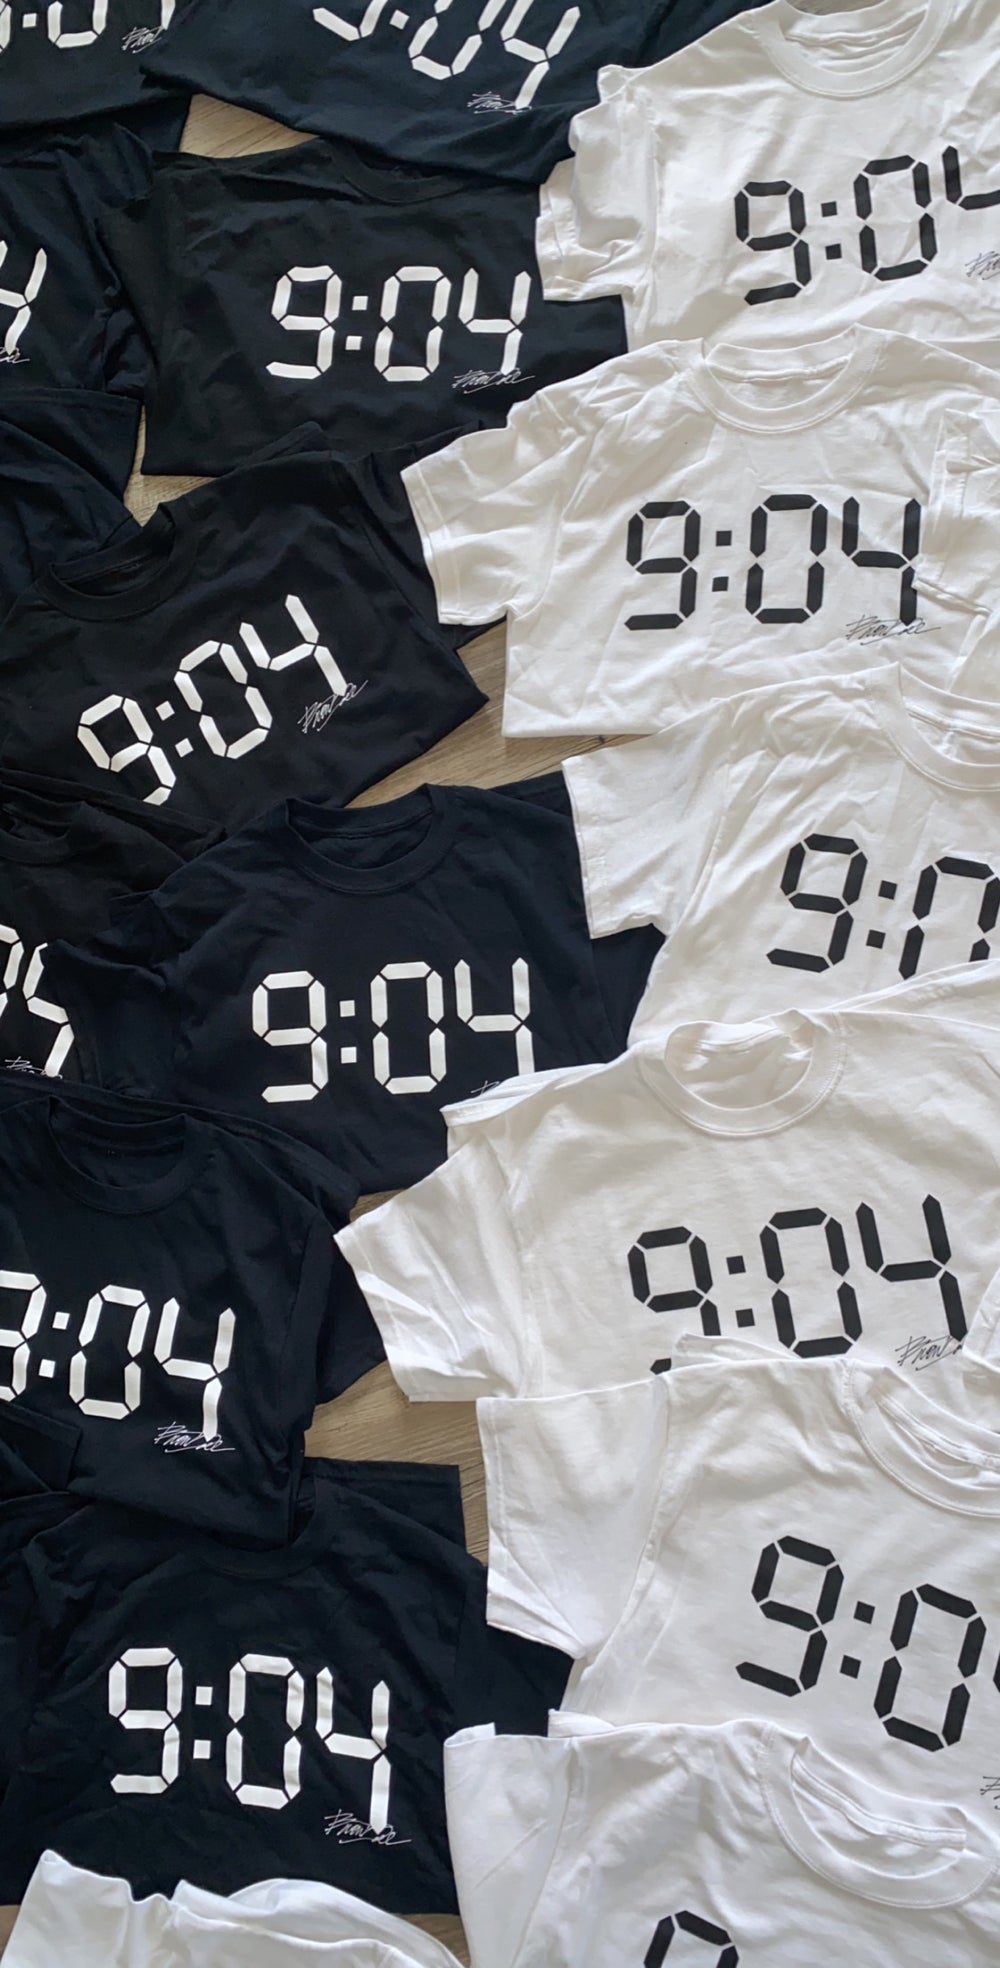 Image of 9:04 Tee (Black or White)